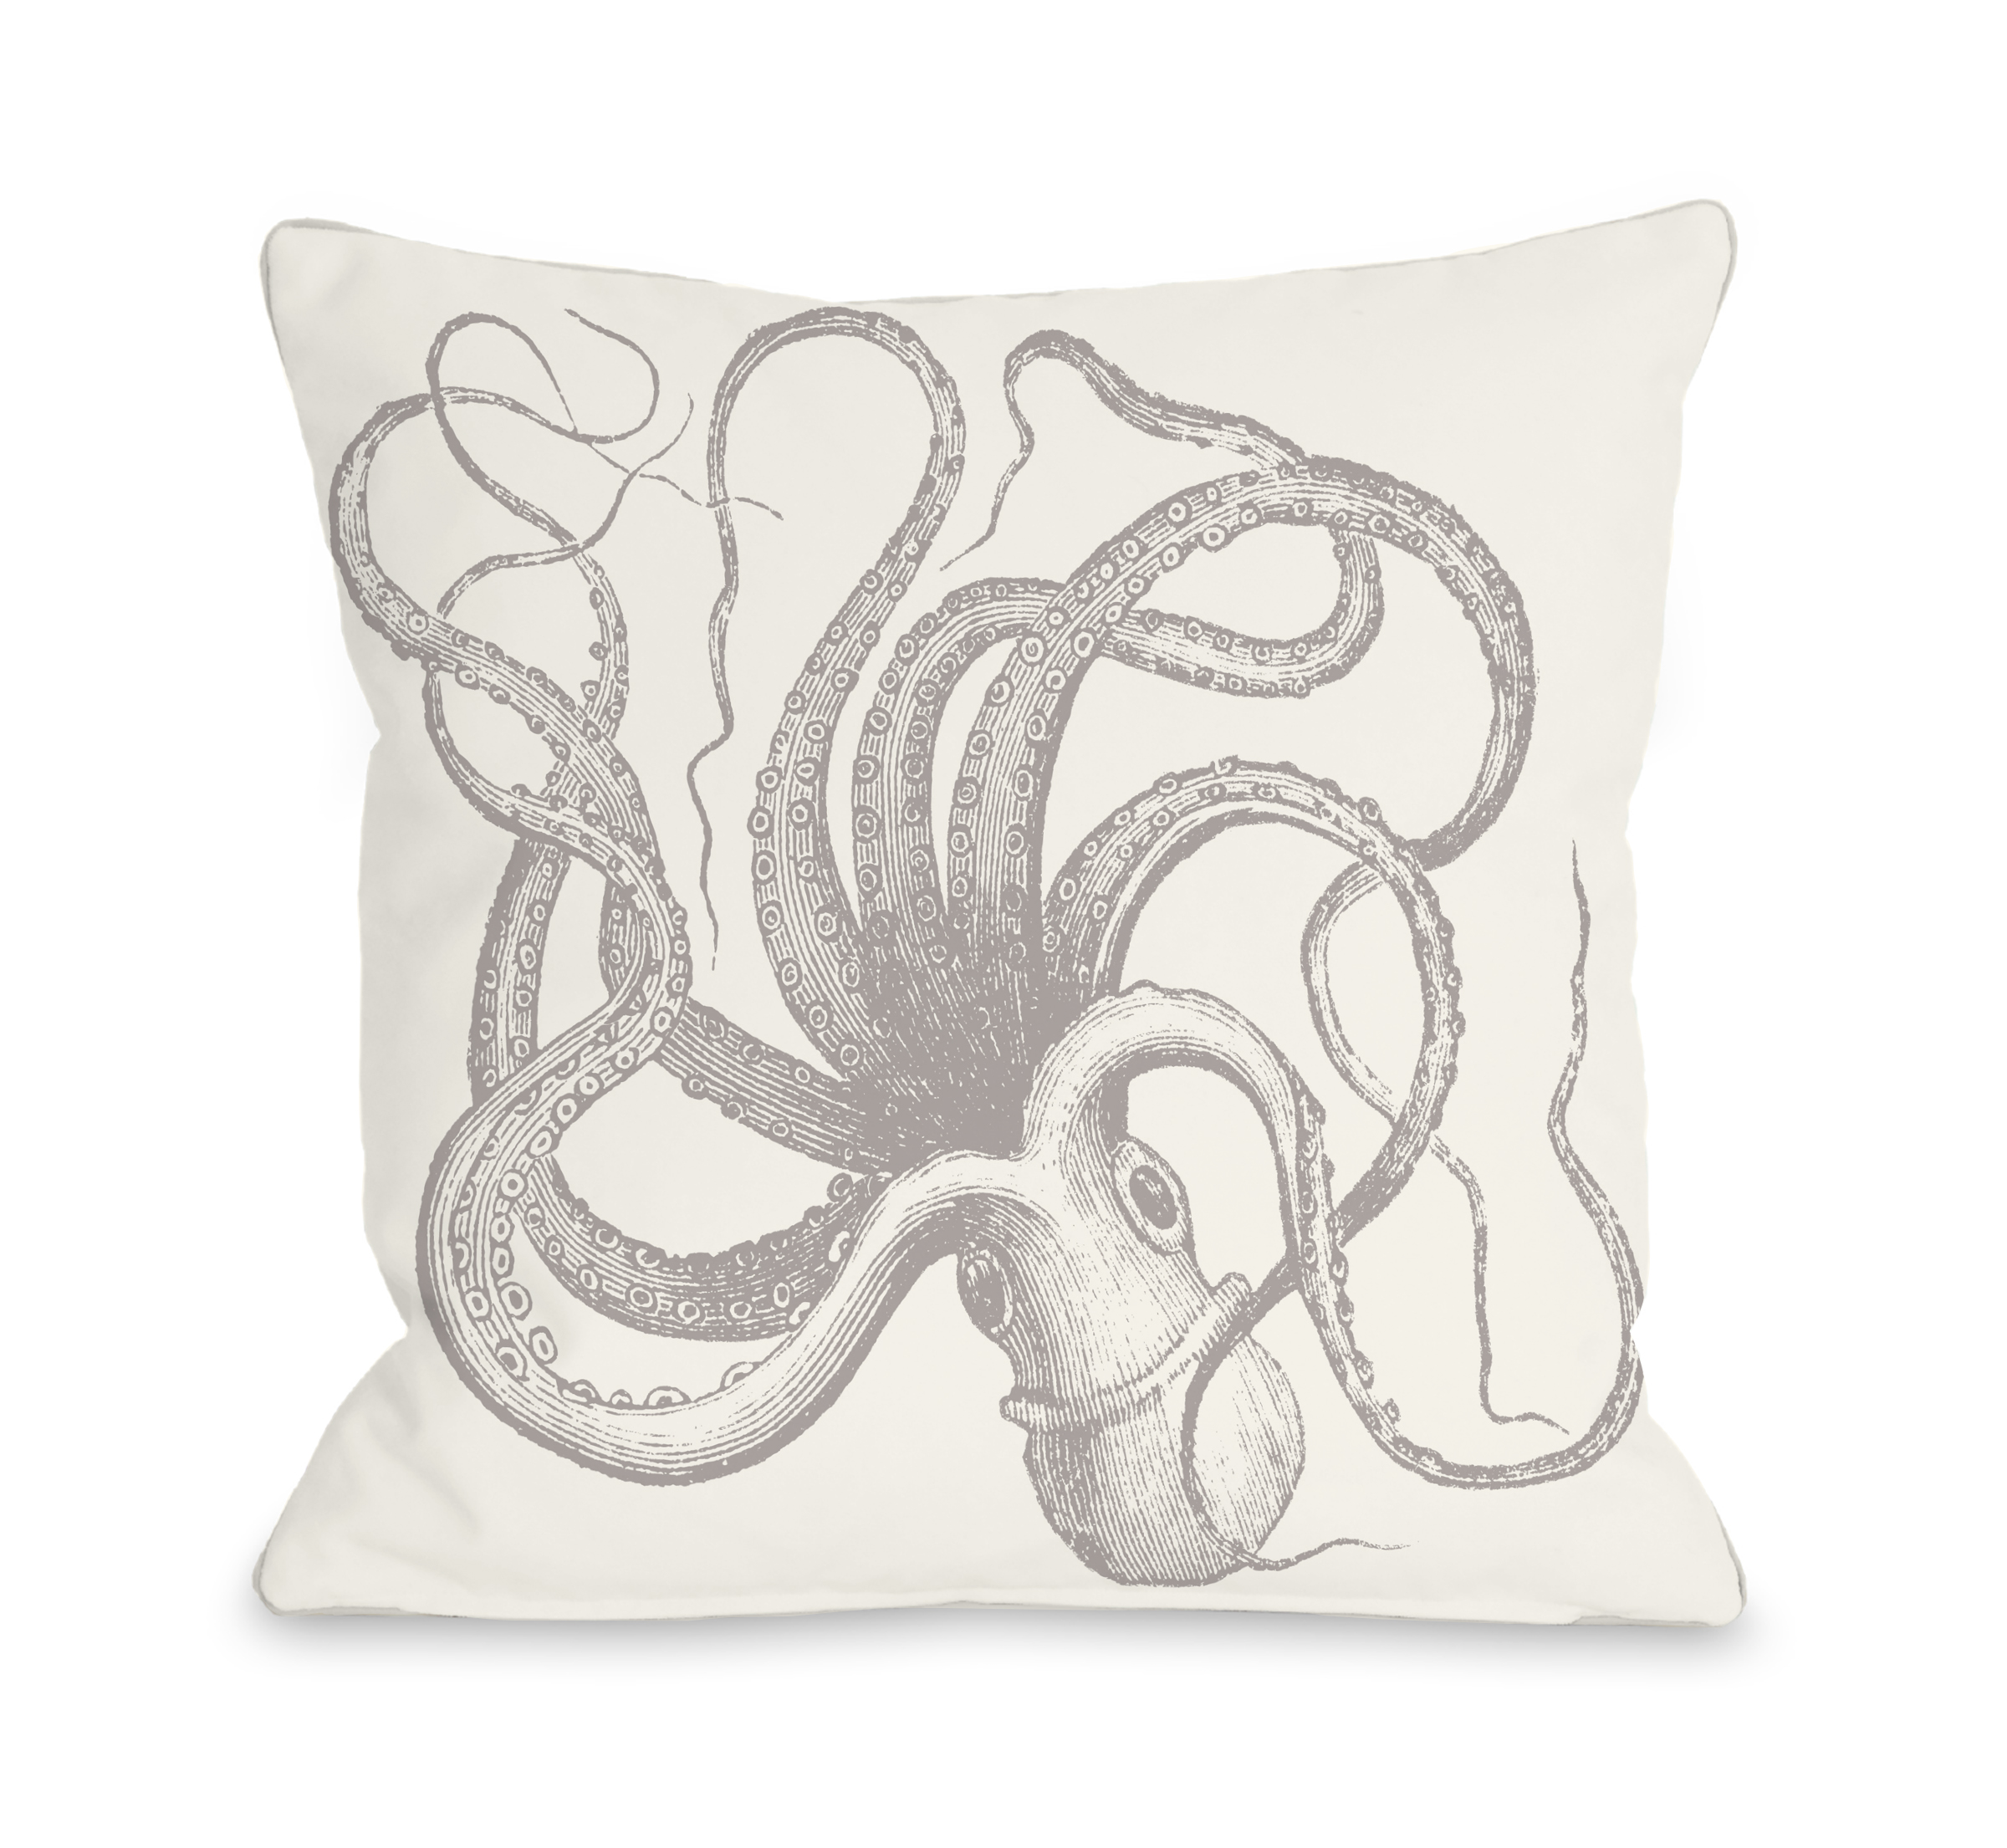 Natural Octopus - Tan 16x16 Pillow by OBC